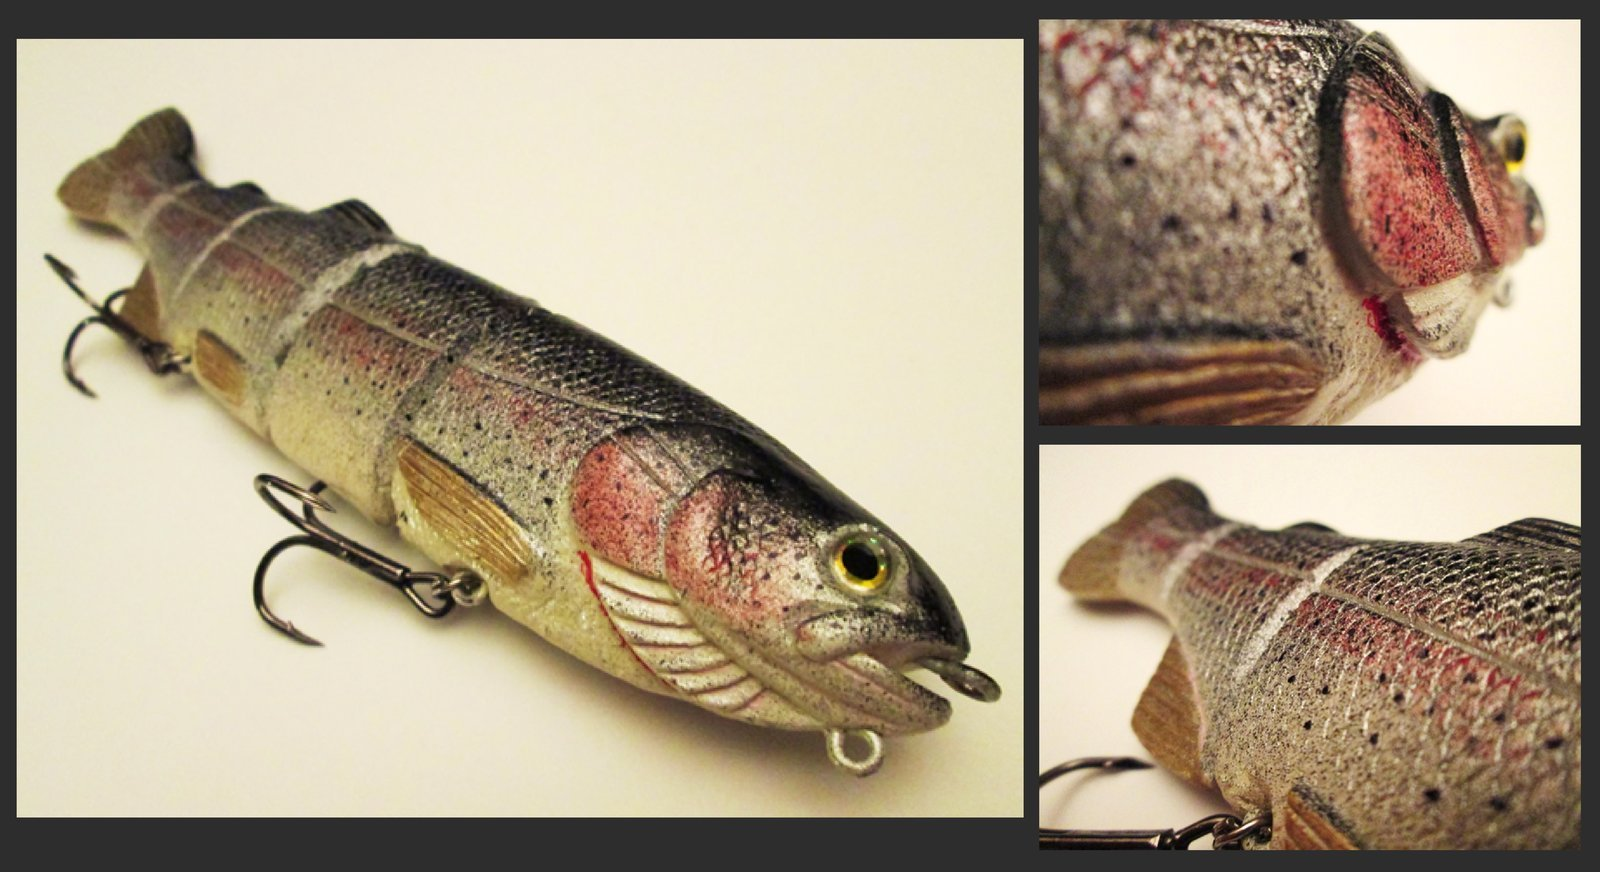 2nd place - Keeper Trout - By danthefisherman